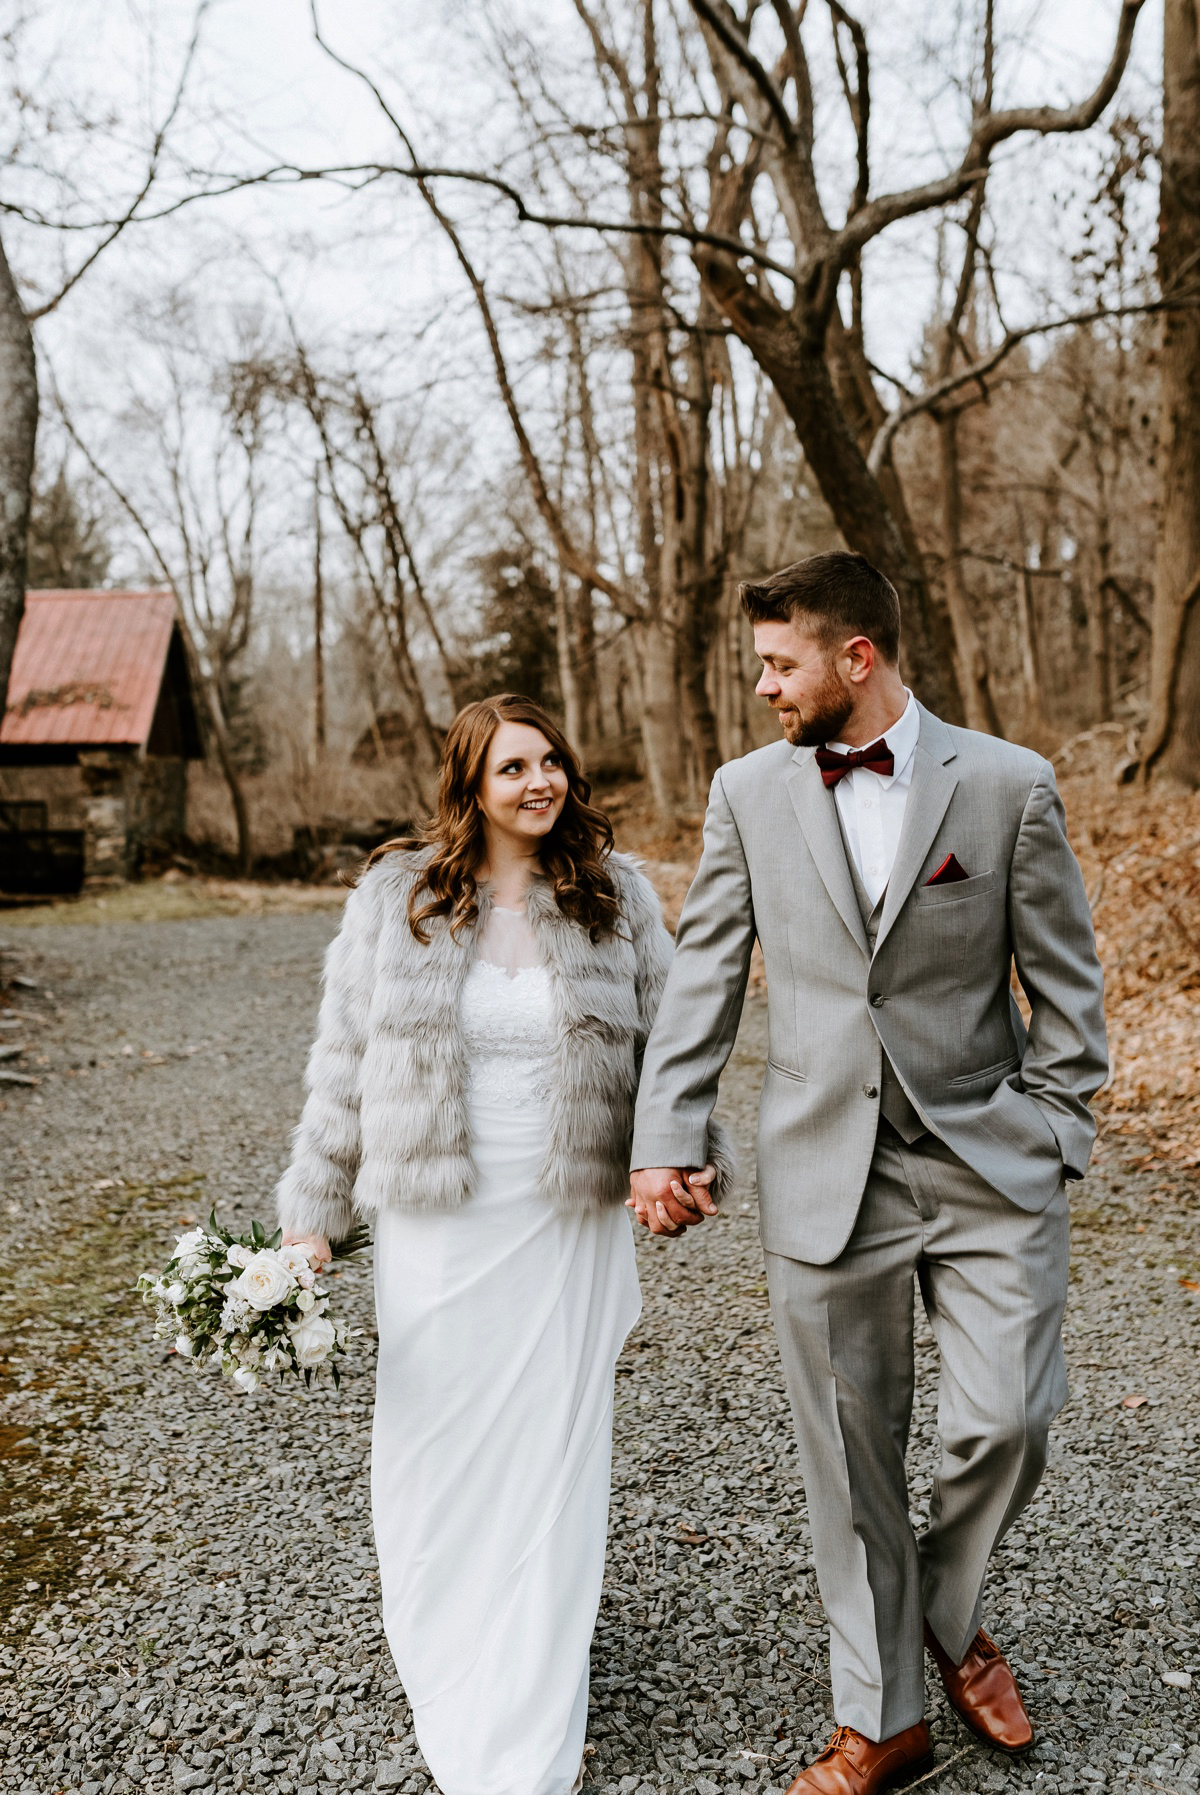 44 The Inn At Glencairn Destination Wedding Photographer Winter Elopement New Jersey Wedding Photographer Intimate Wedding